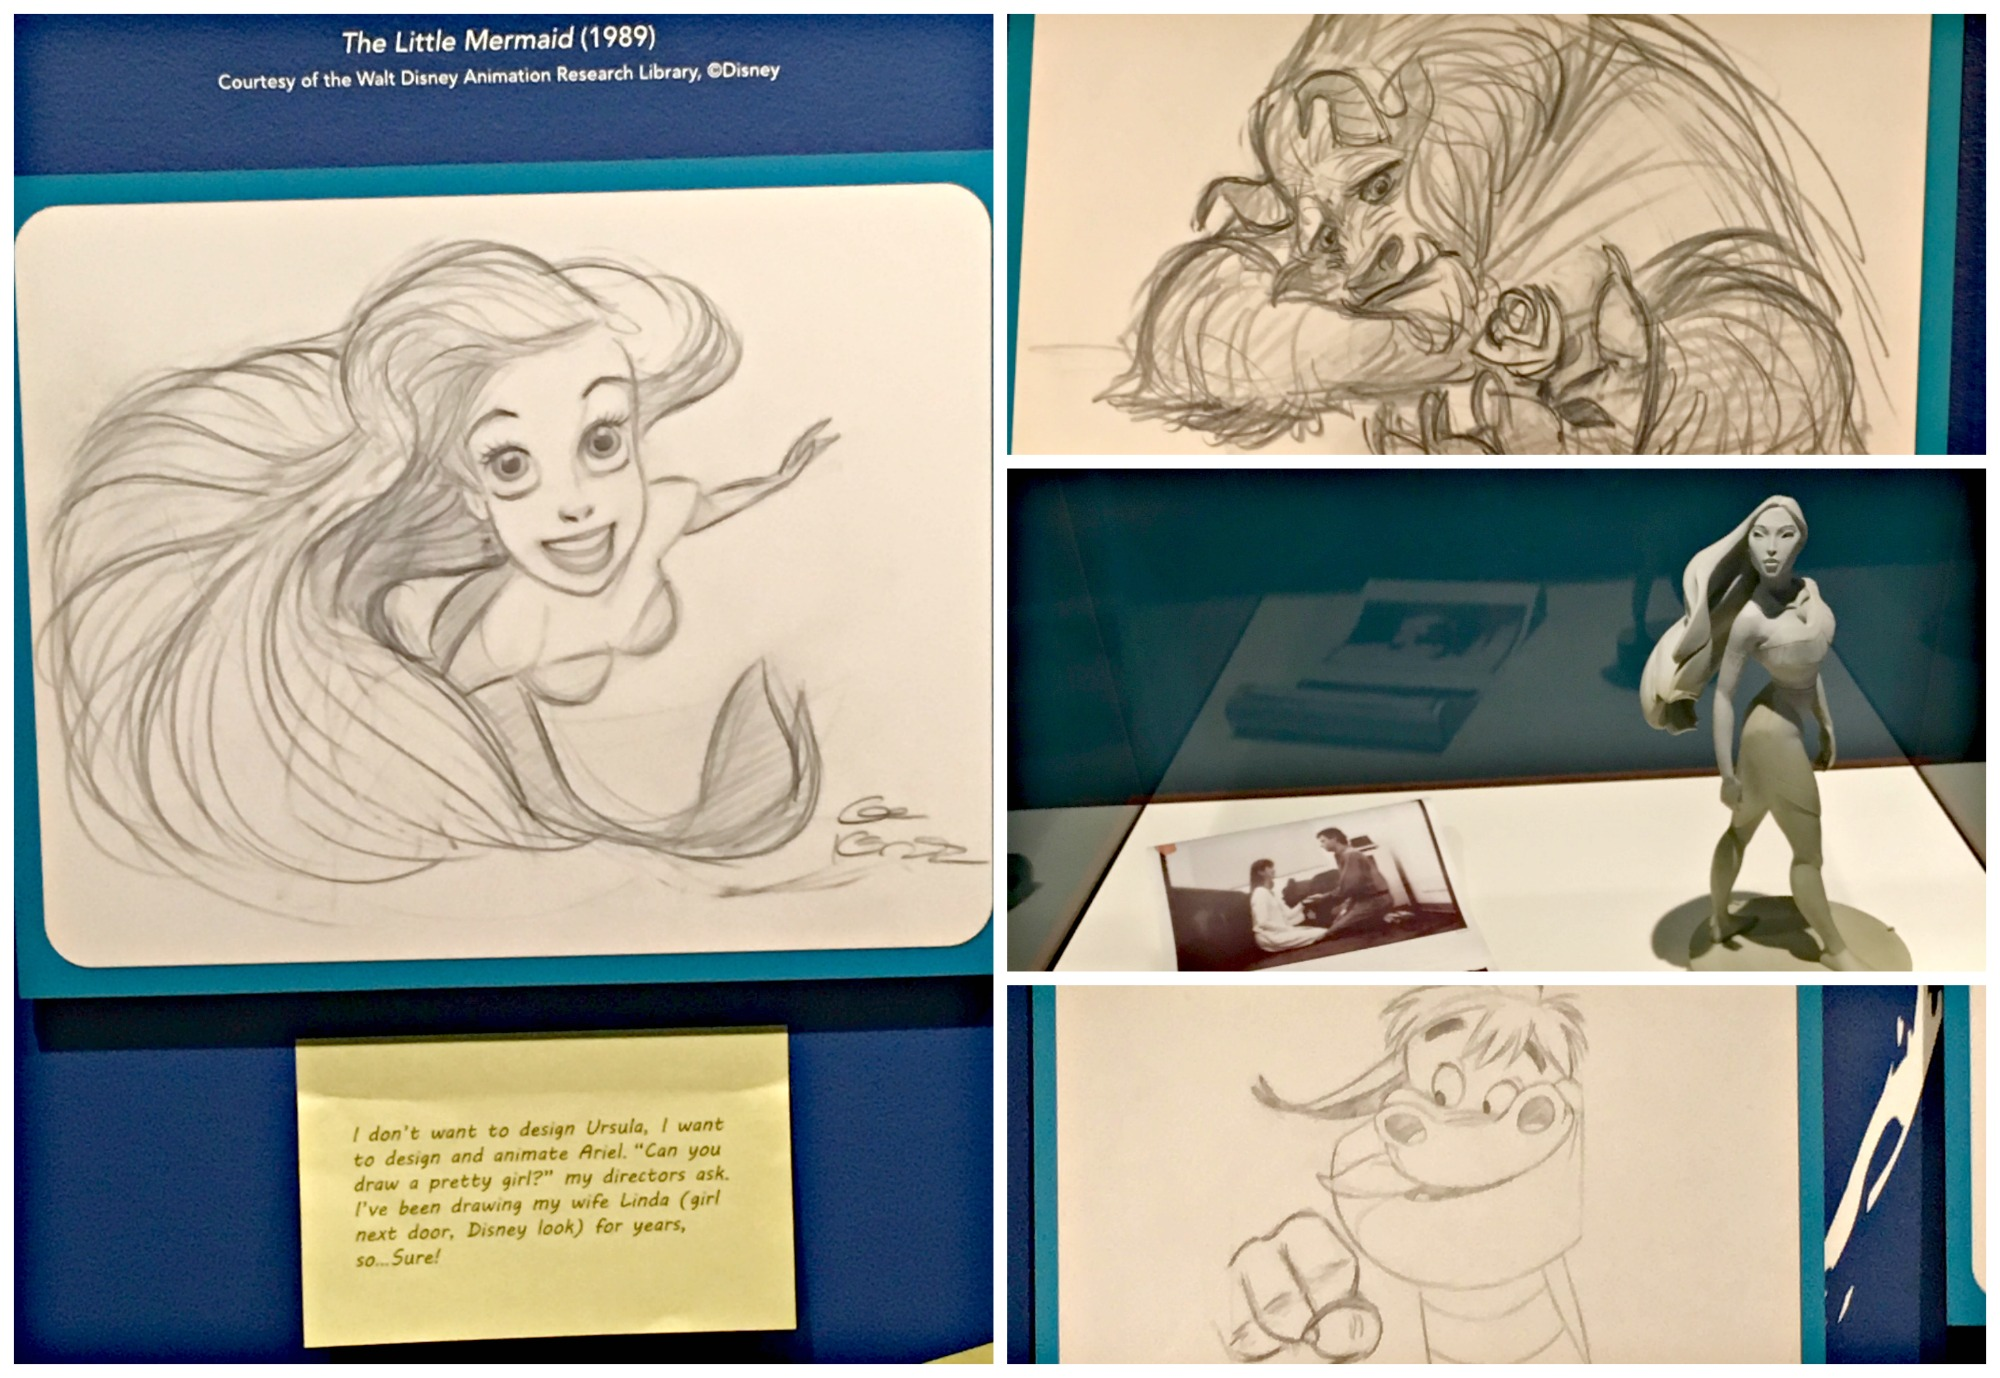 Walt Disney Family Museum Glen Keane Exhibit